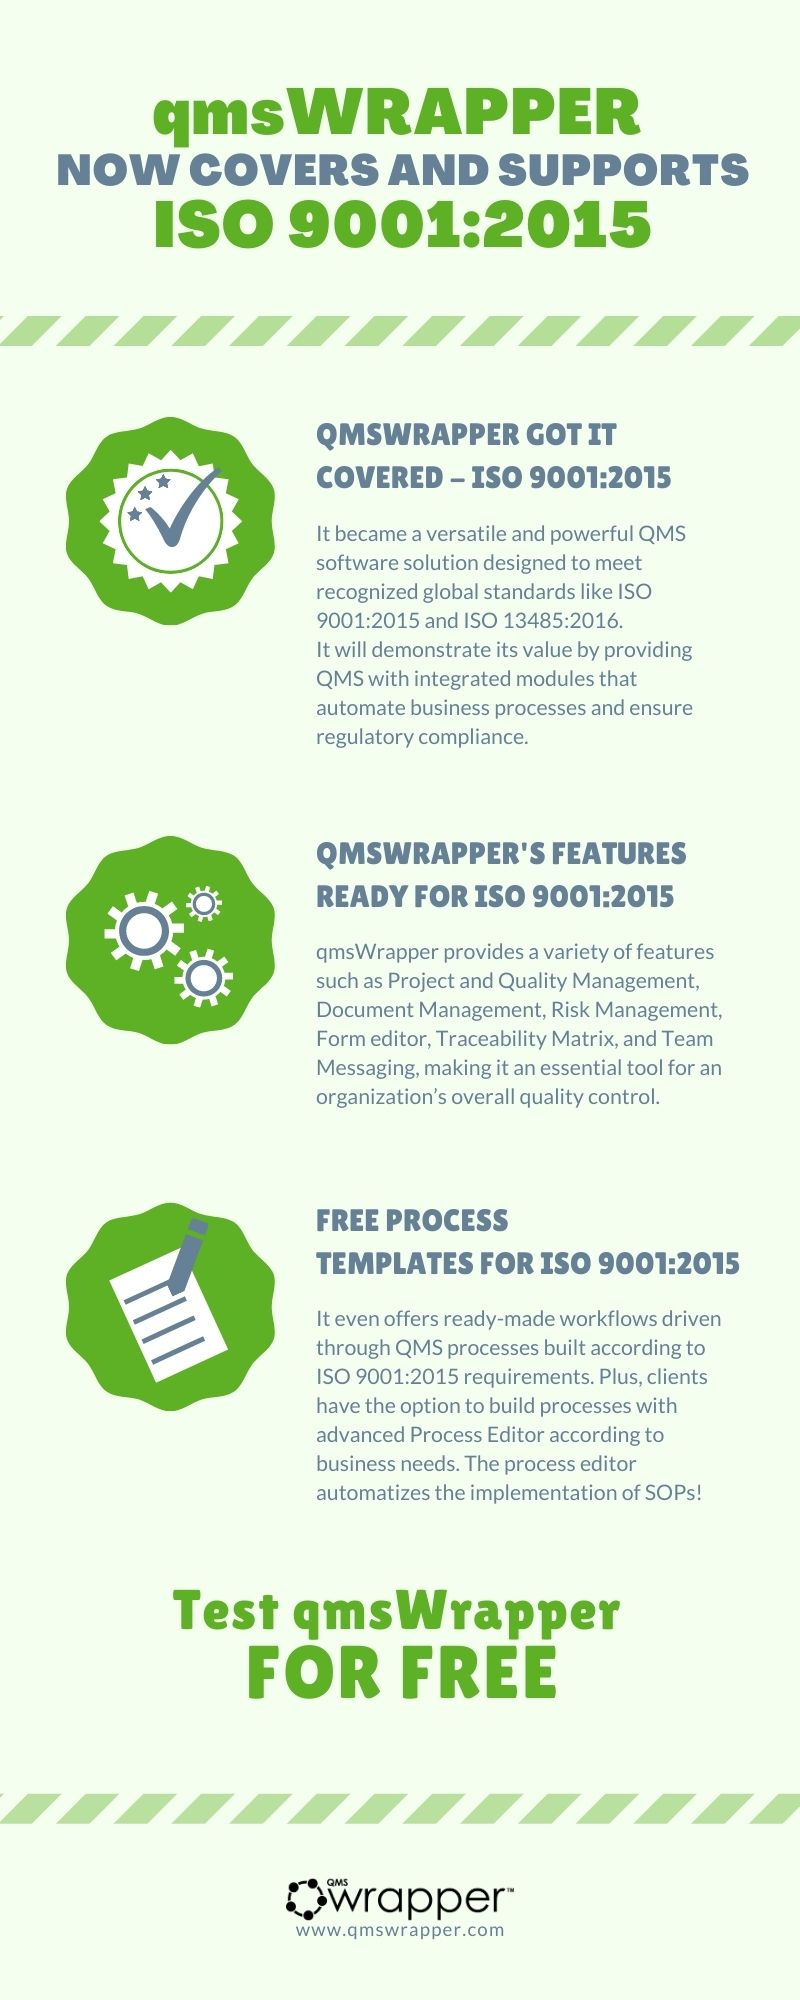 qmsWrapper supports ISO 9001:2015